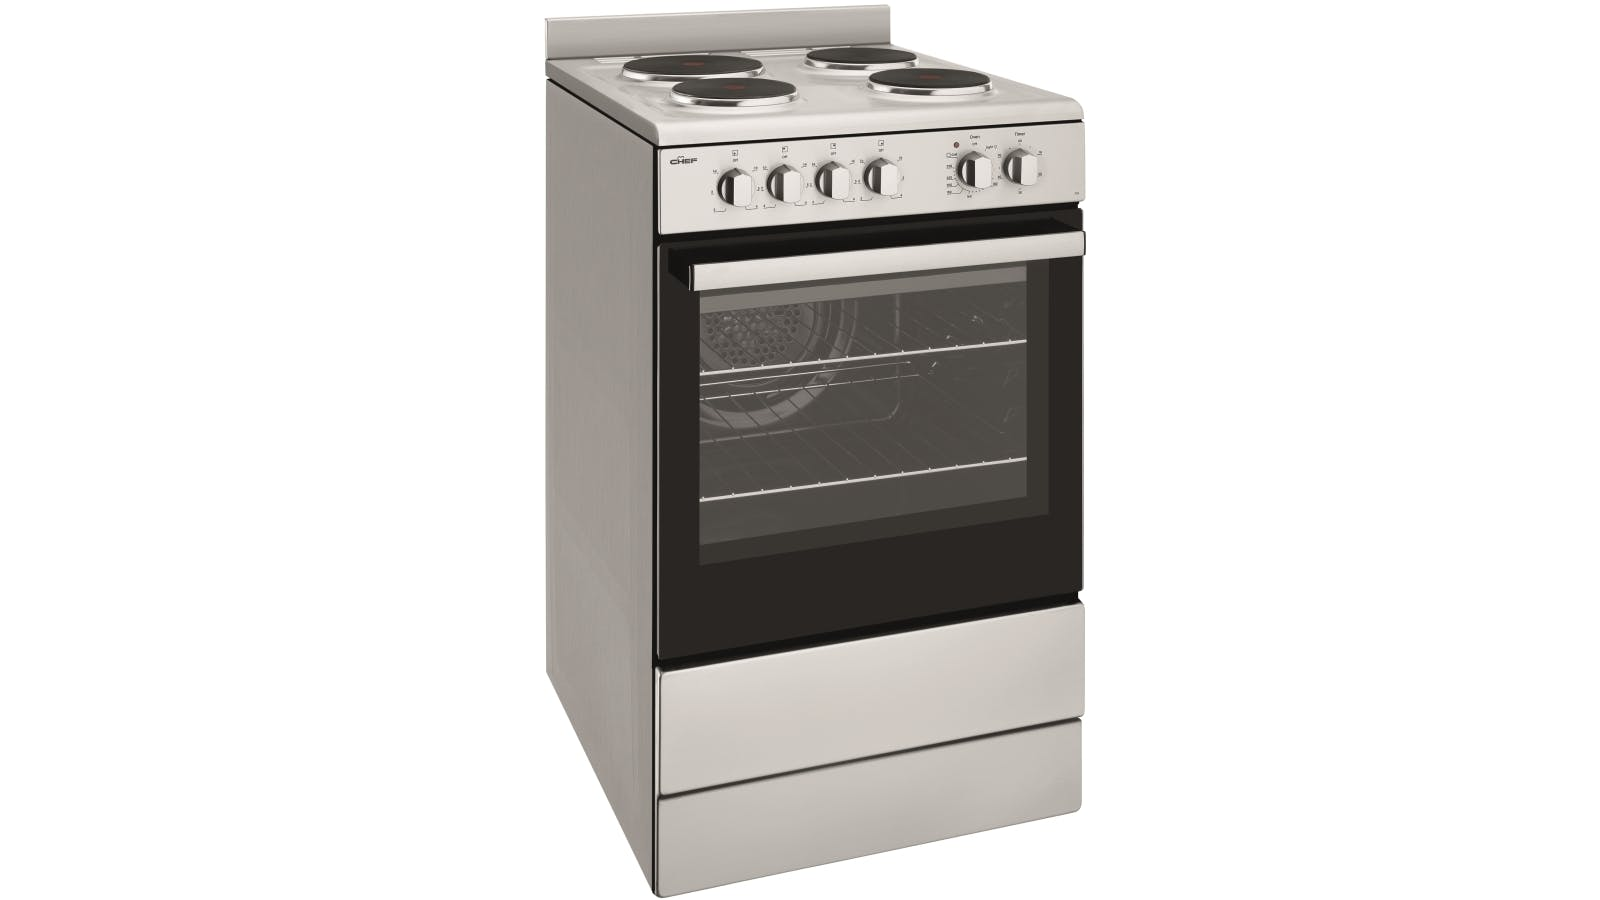 Chef 54cm Freestanding Electric Cooker   Domayne